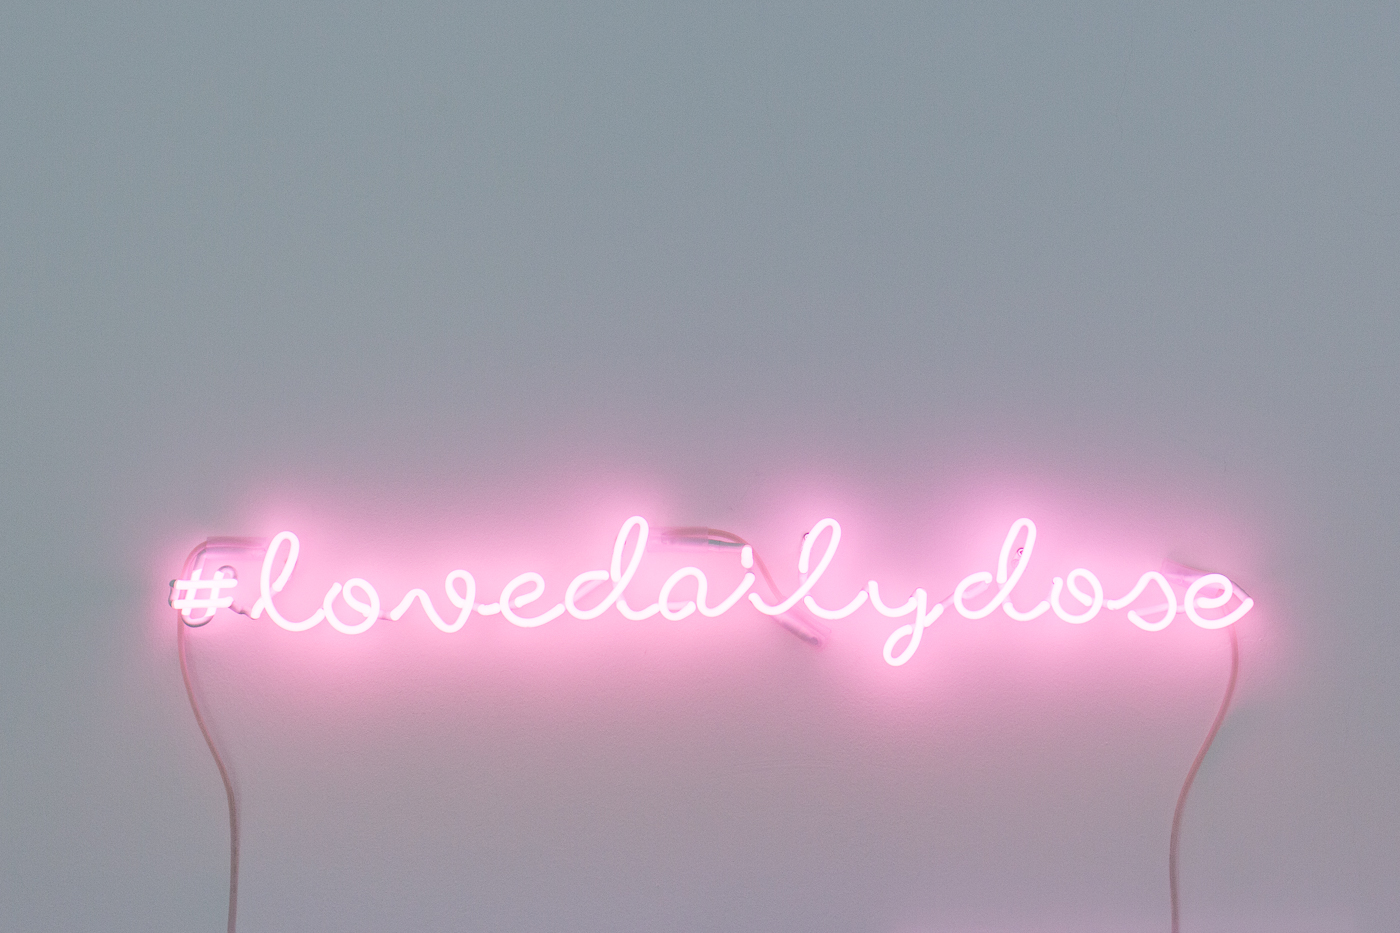 Sygns Office Update: More Storage + A Pink Neon Sign - The Daily Dose